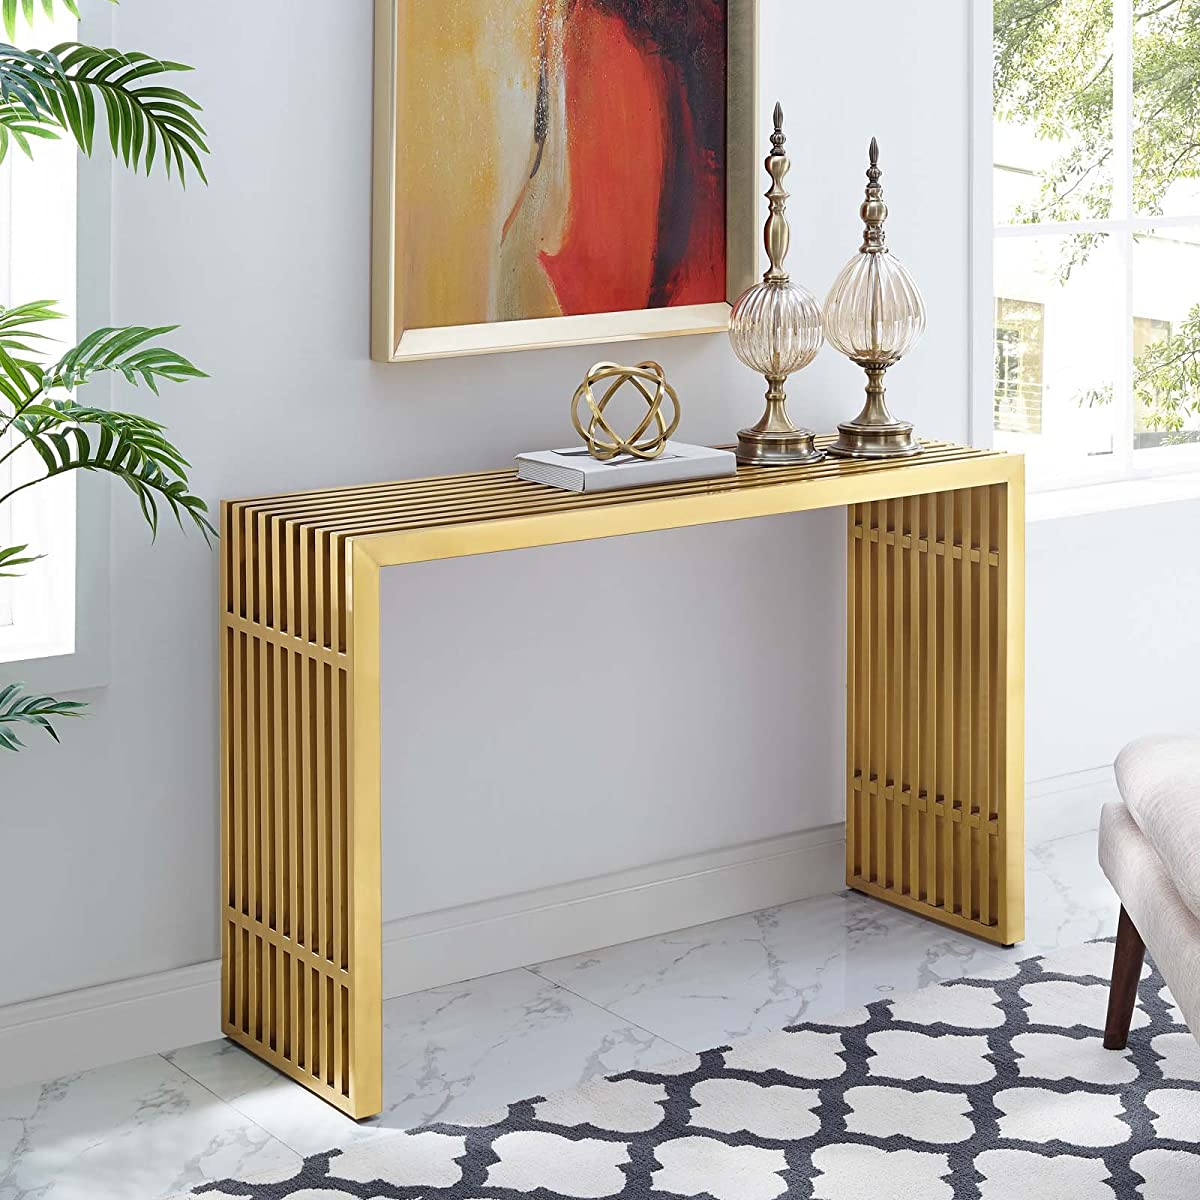 Modway EEI-3036-GLD Gridiron, Console Table, Gold